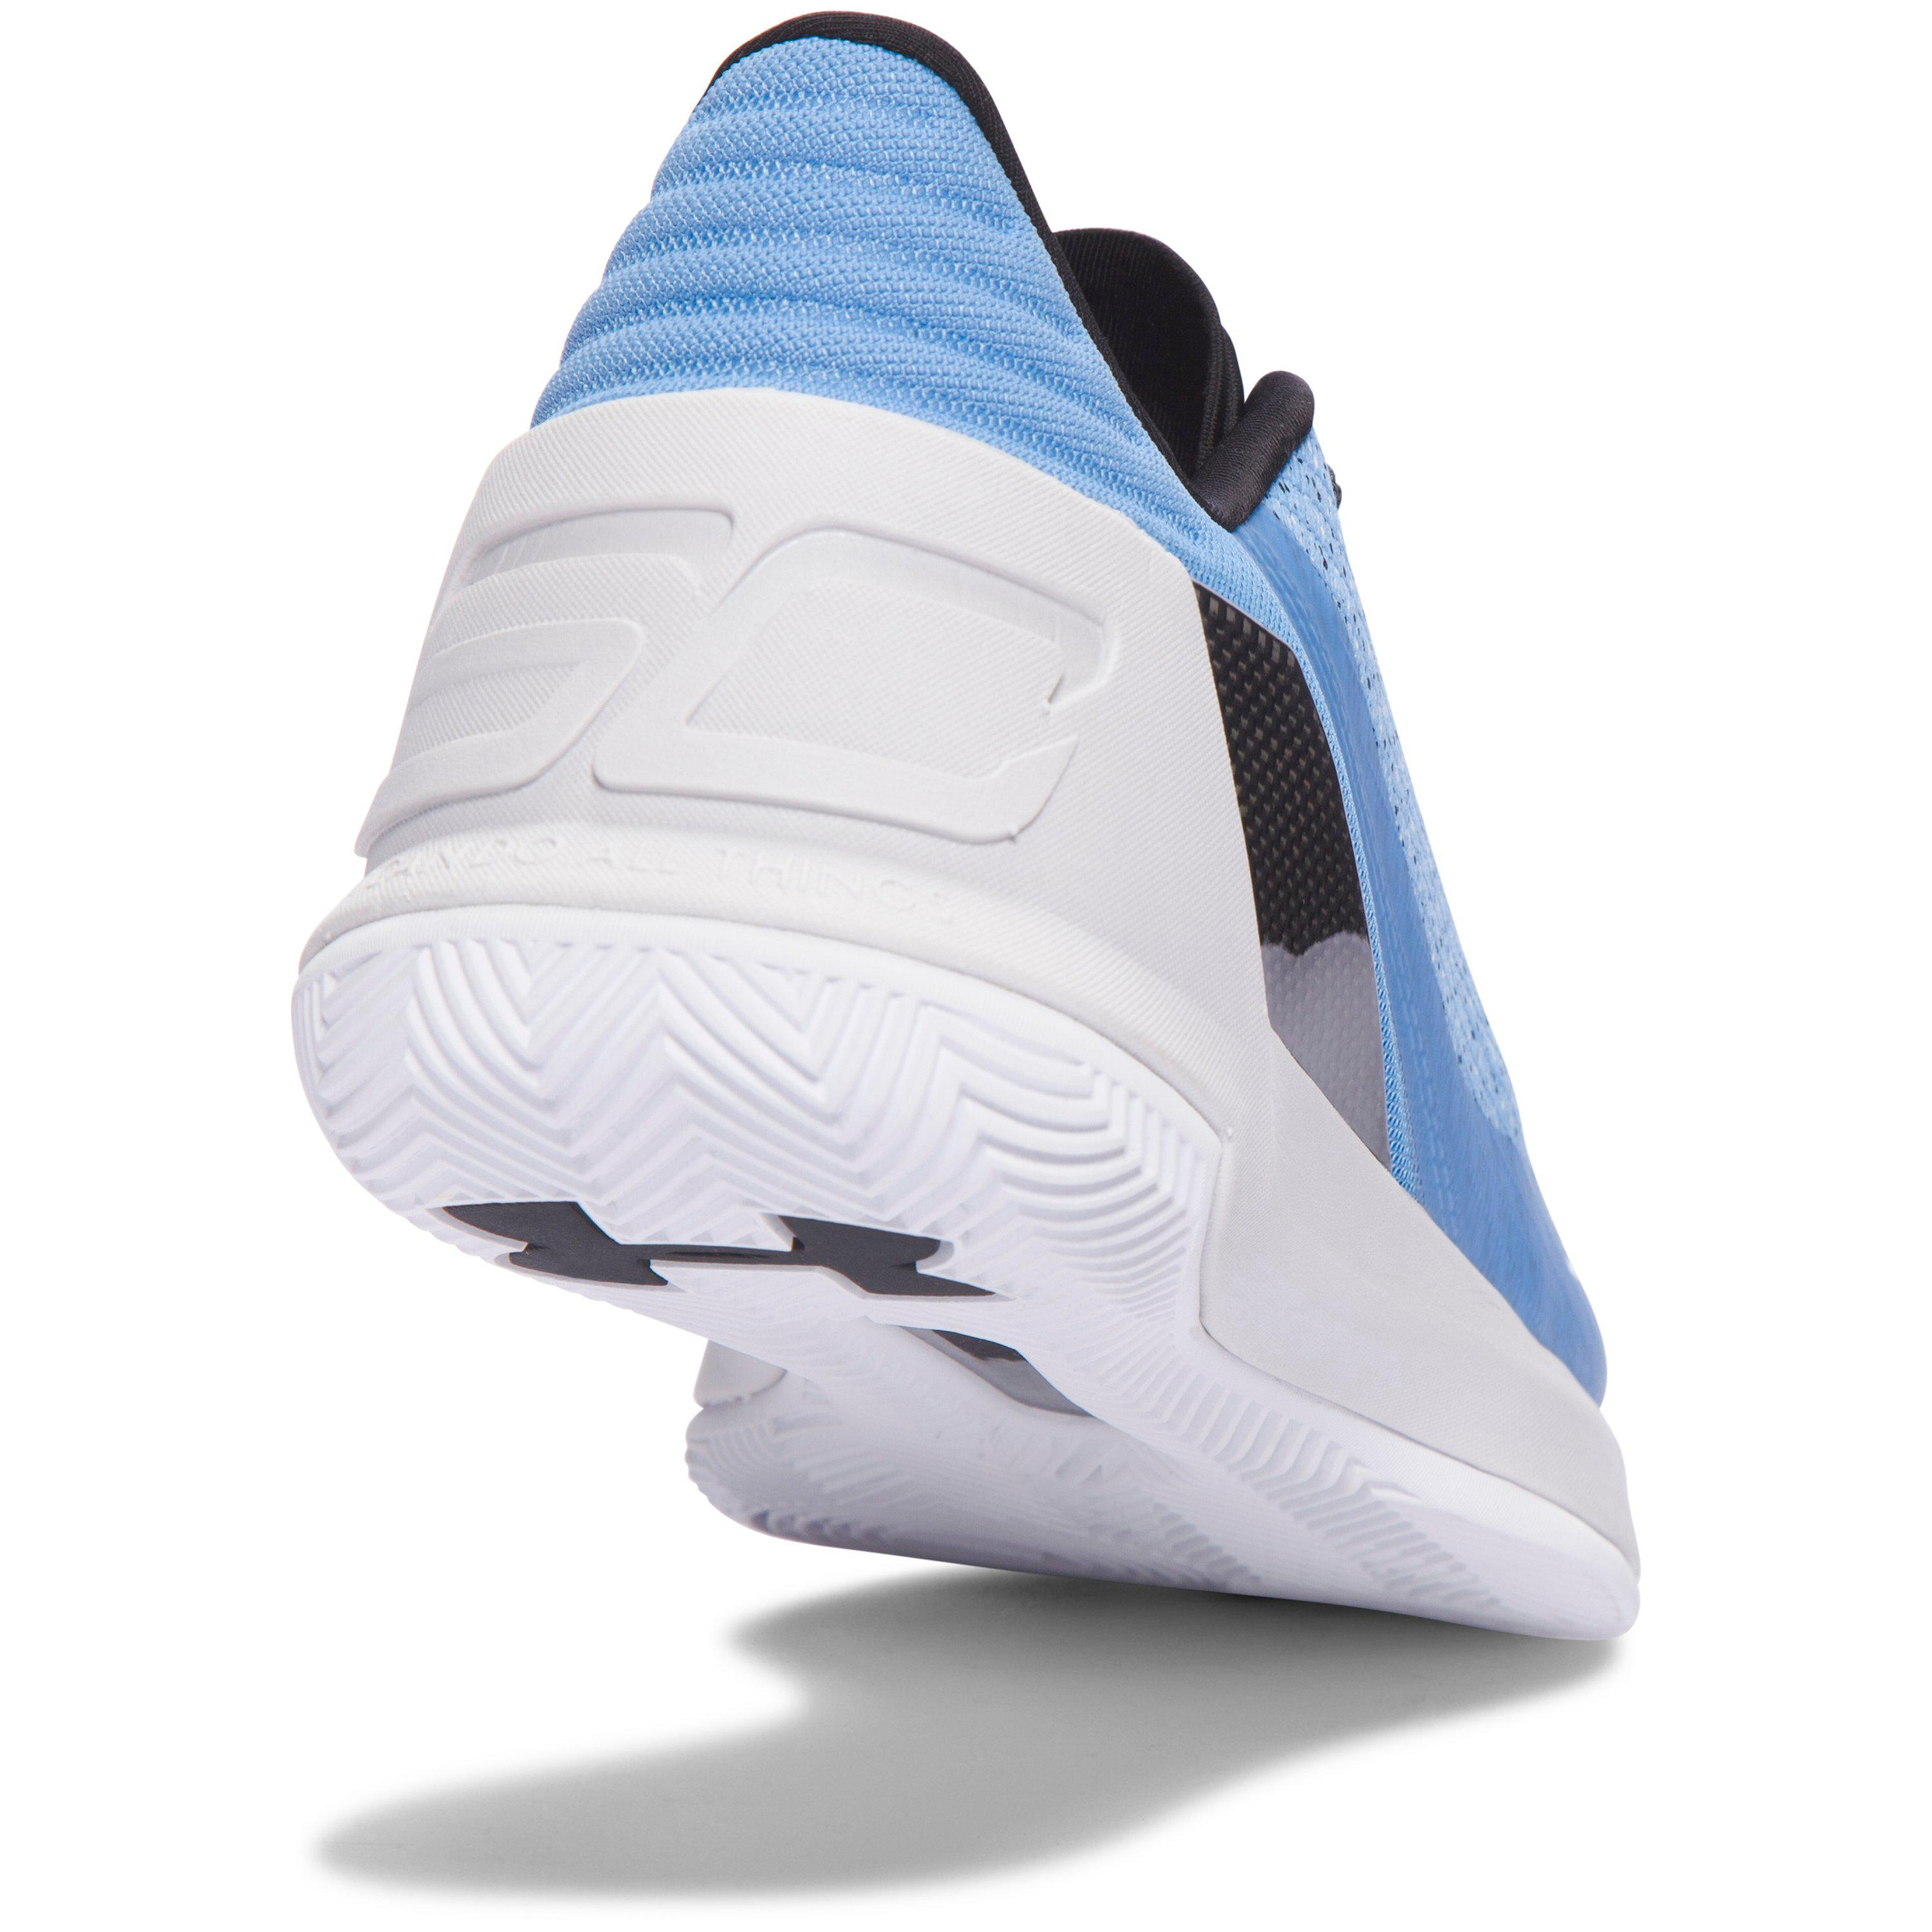 130857e4969c ... promo code for lyst under armour mens ua curry 3 low basketball shoes  in blue ffb8b